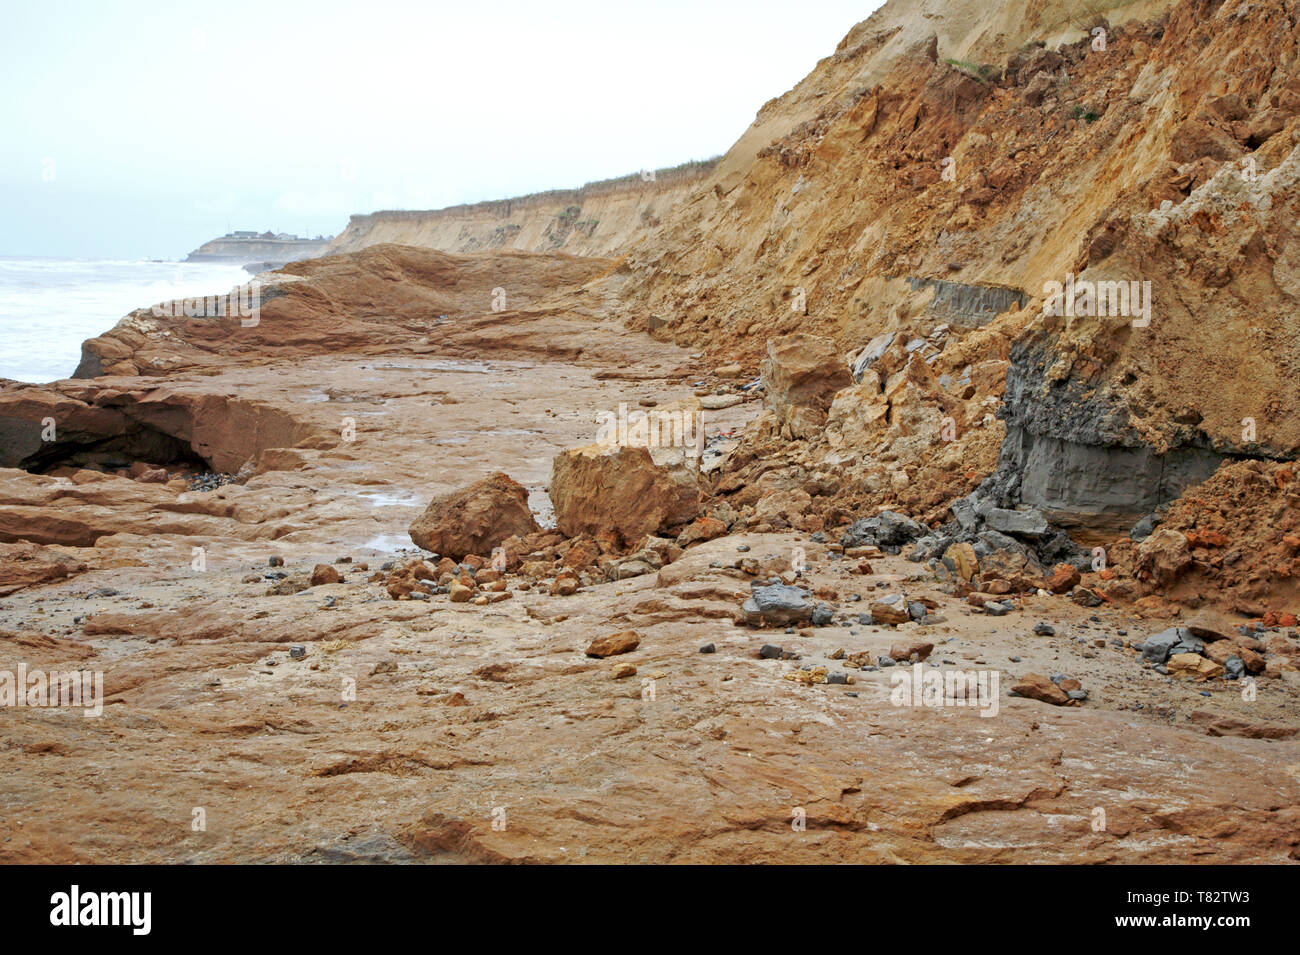 Eroding cliffs resulting from wave action and weathering on the Norfolk coast at Happisburgh, Norfolk, England, United Kingdom, Europe. - Stock Image